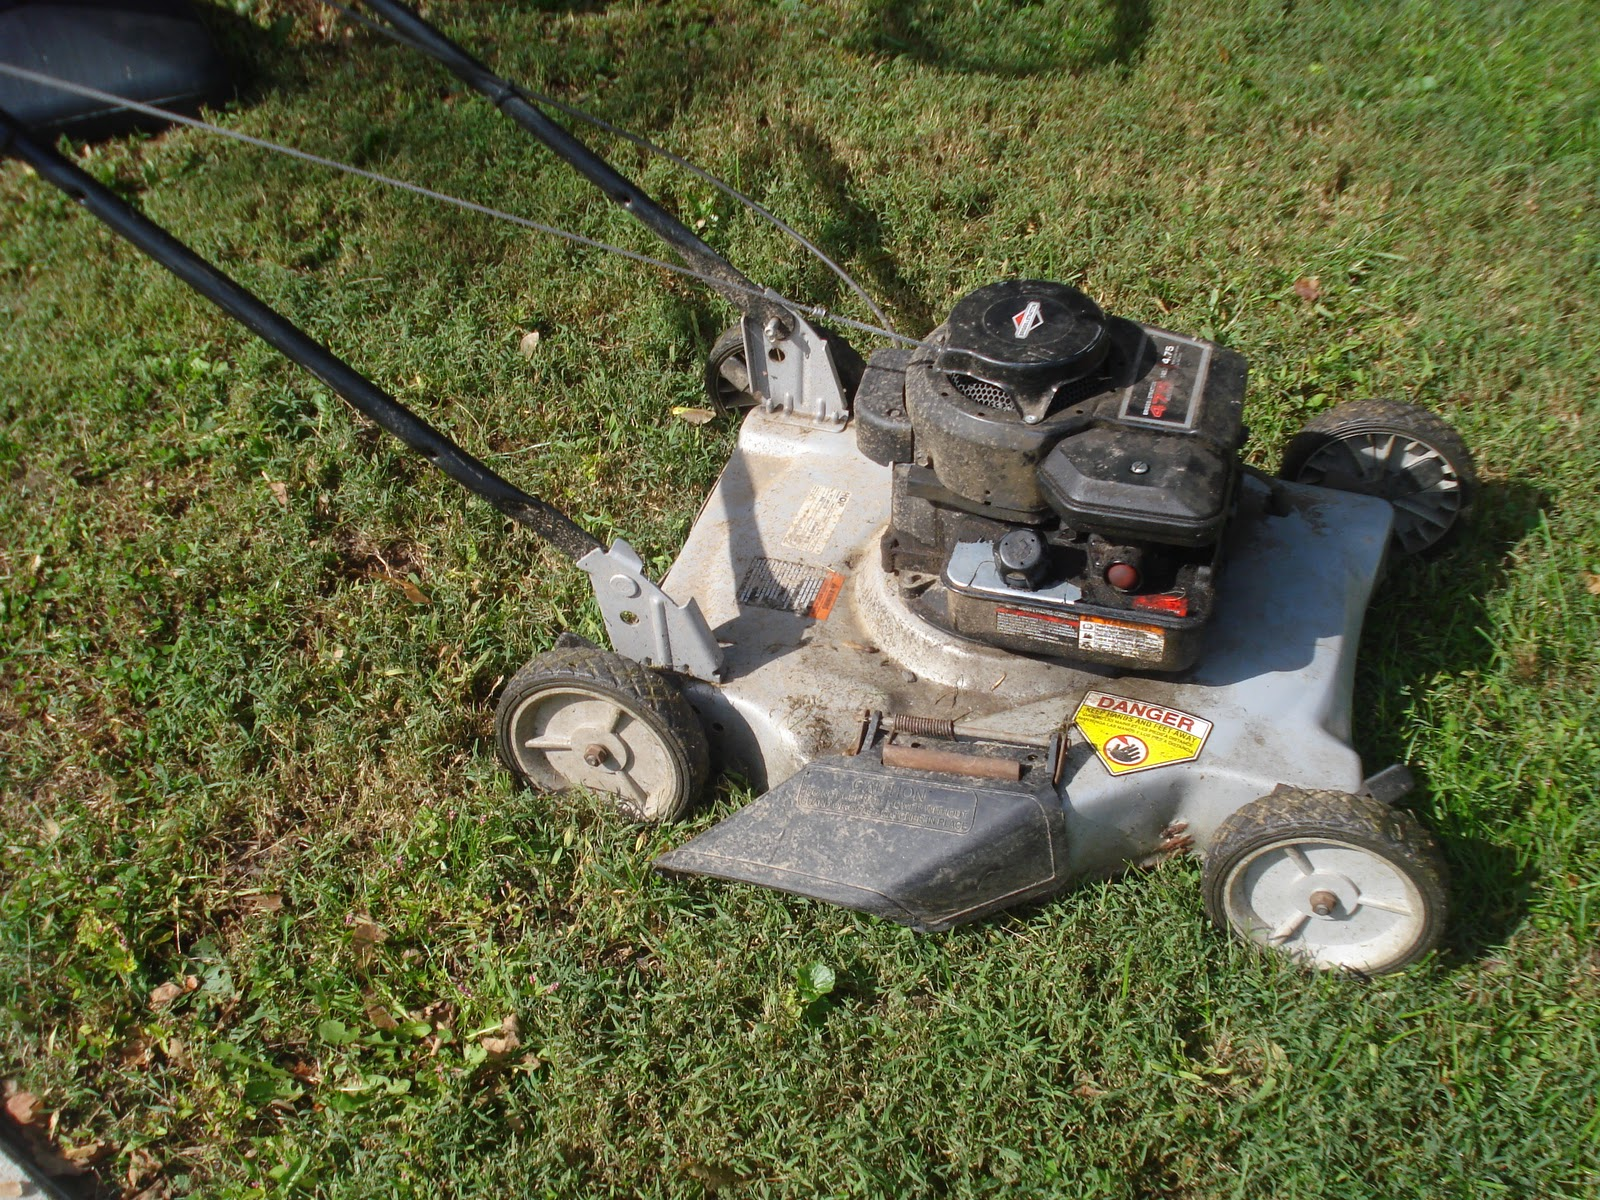 Lawn Mower Maintenance Part 1